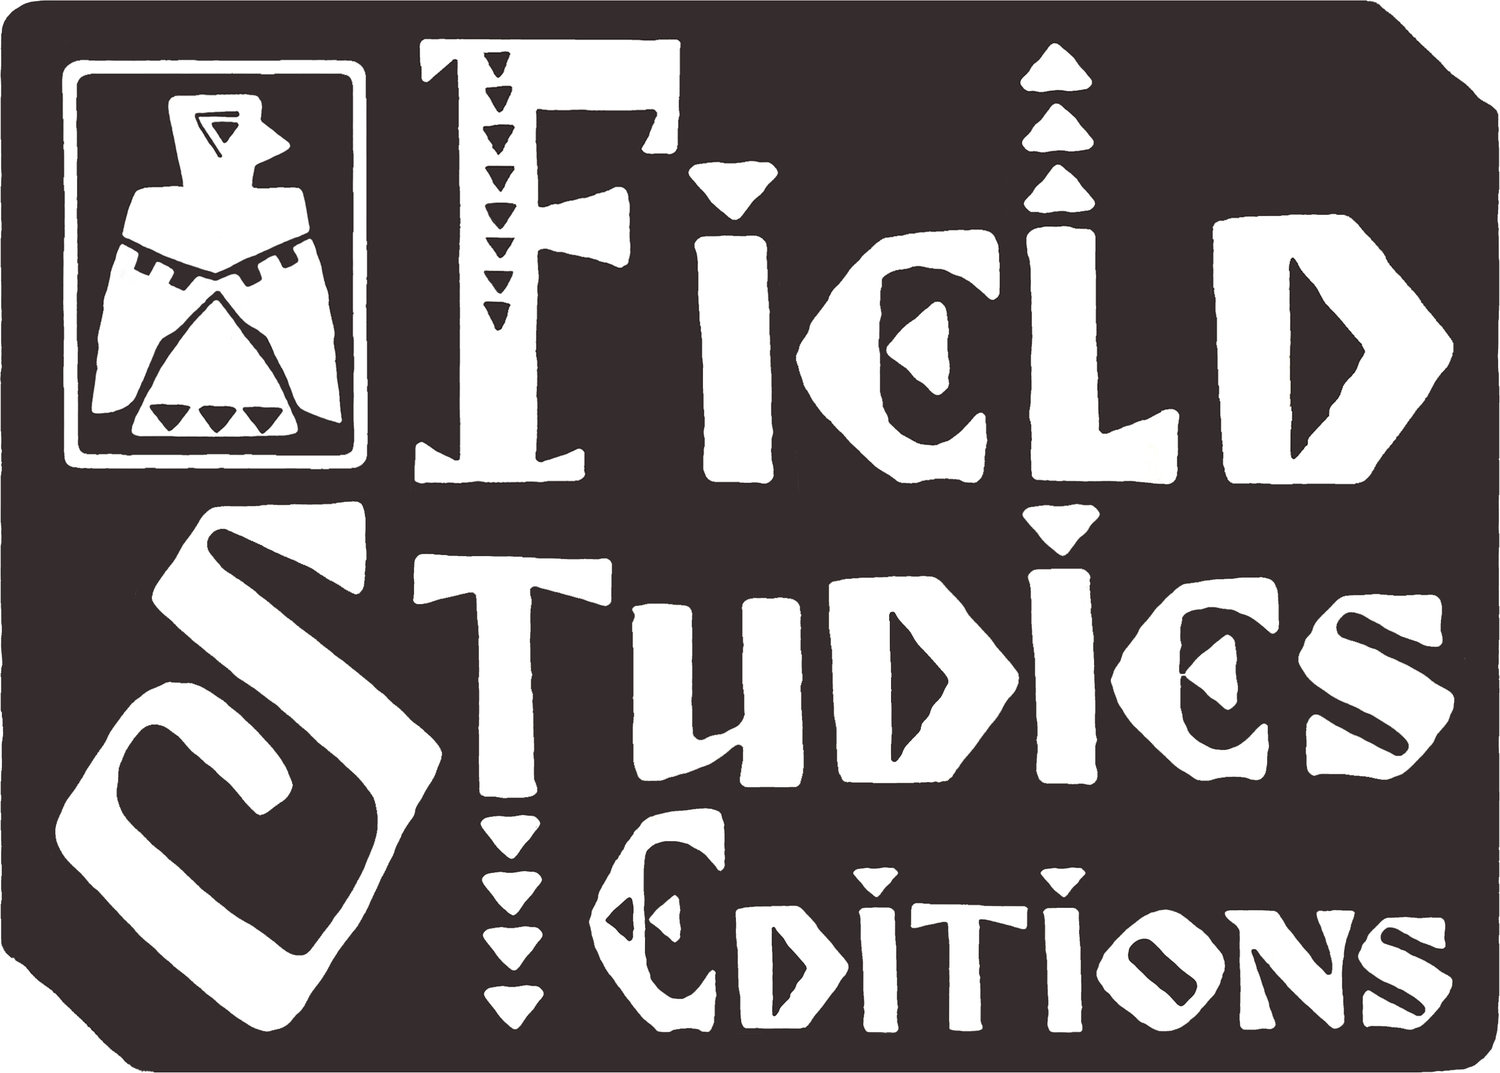 Field Studies Editions